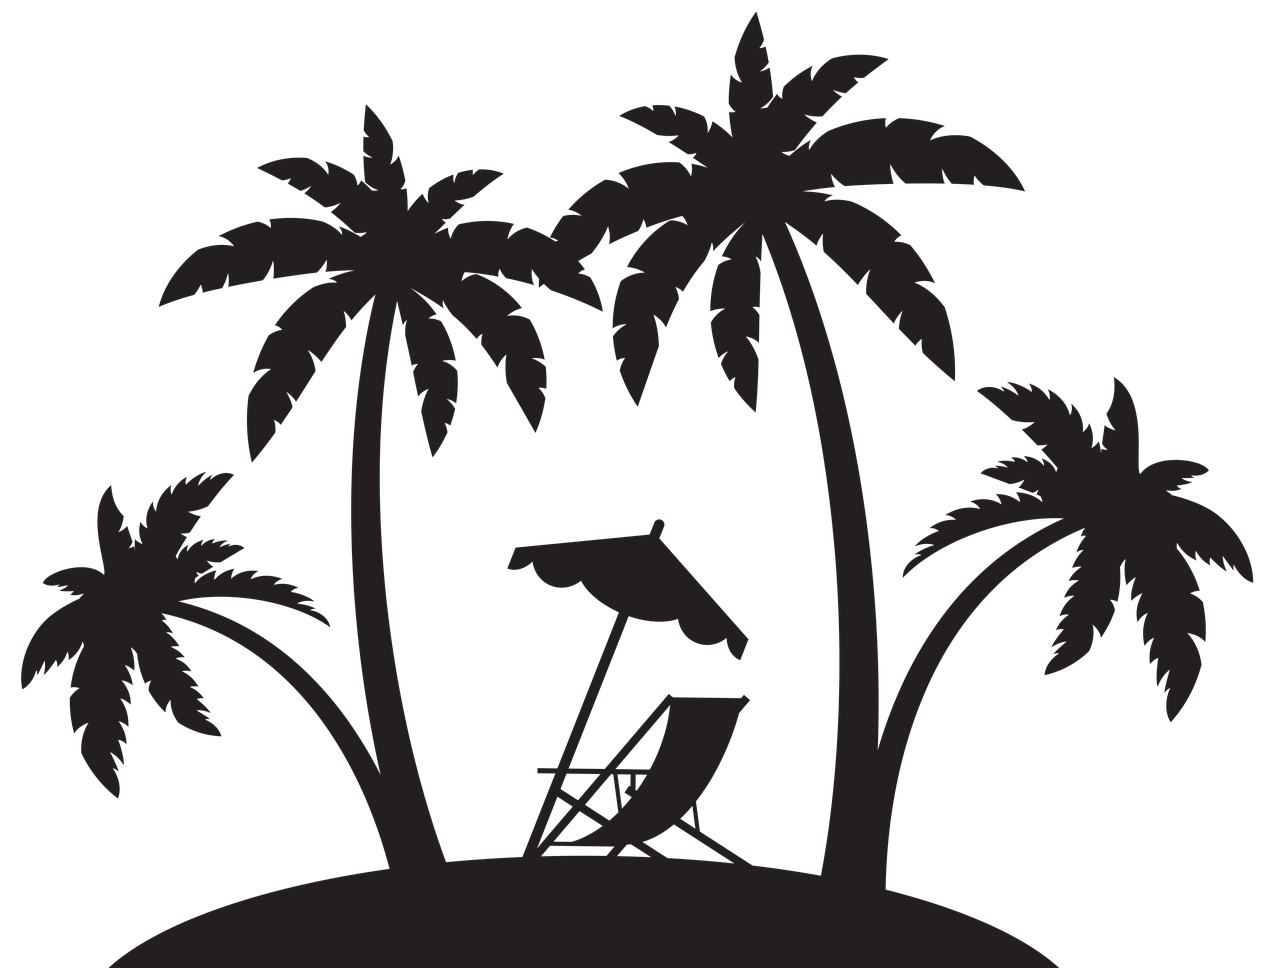 Vacation Beach Ocean Relax Vacation Vacation Beach Ocean Relax Vacation Palm Tree Silhouette Silhouette Clip Art Beach Silhouette